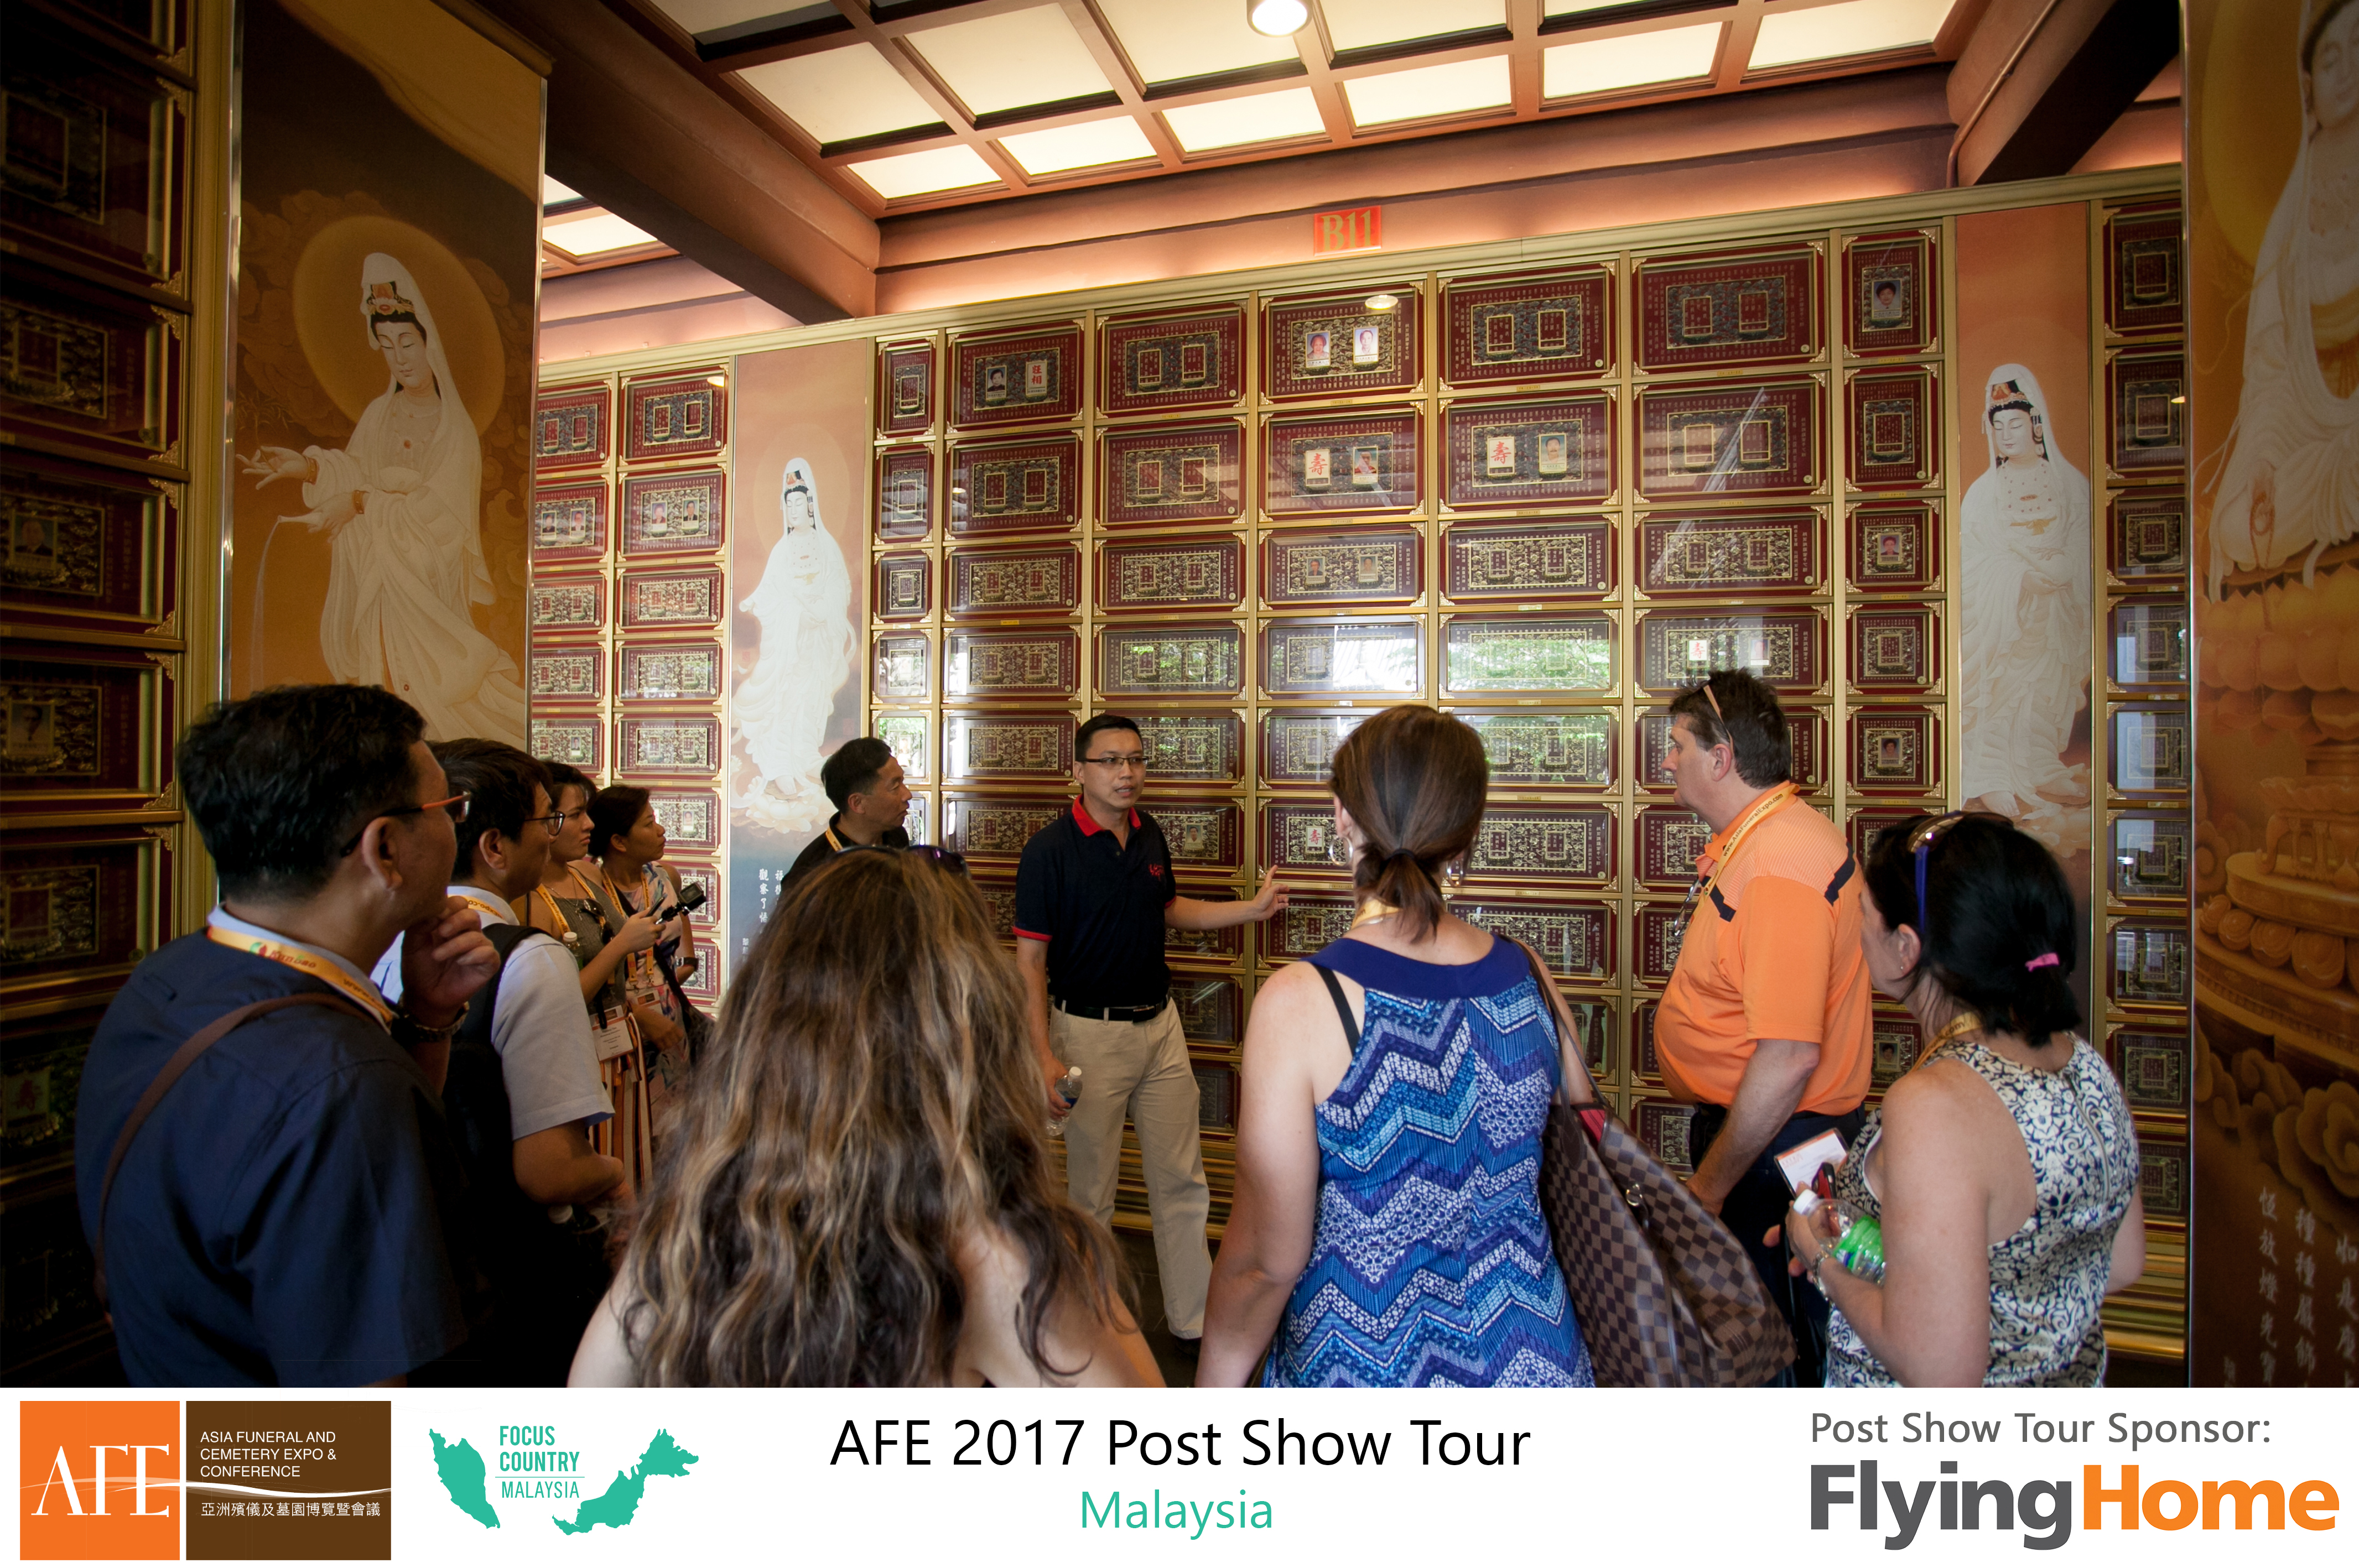 AFE Post Show Tour 2017 Day 2 - 75